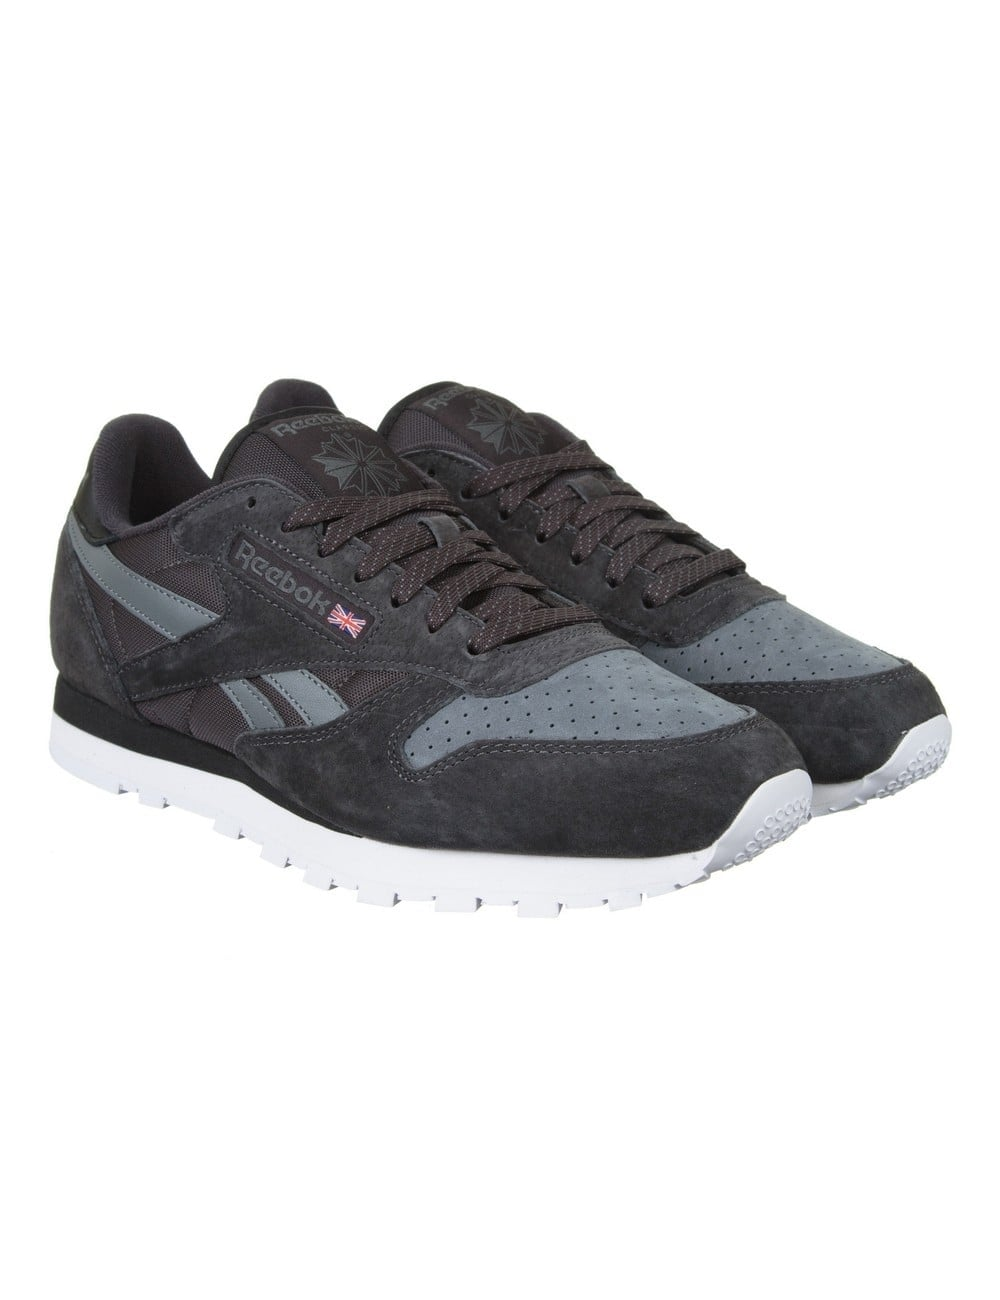 b424e5a30654e Reebok CL Leather NP Shoes - Coal Alloy - Footwear from Fat Buddha ...